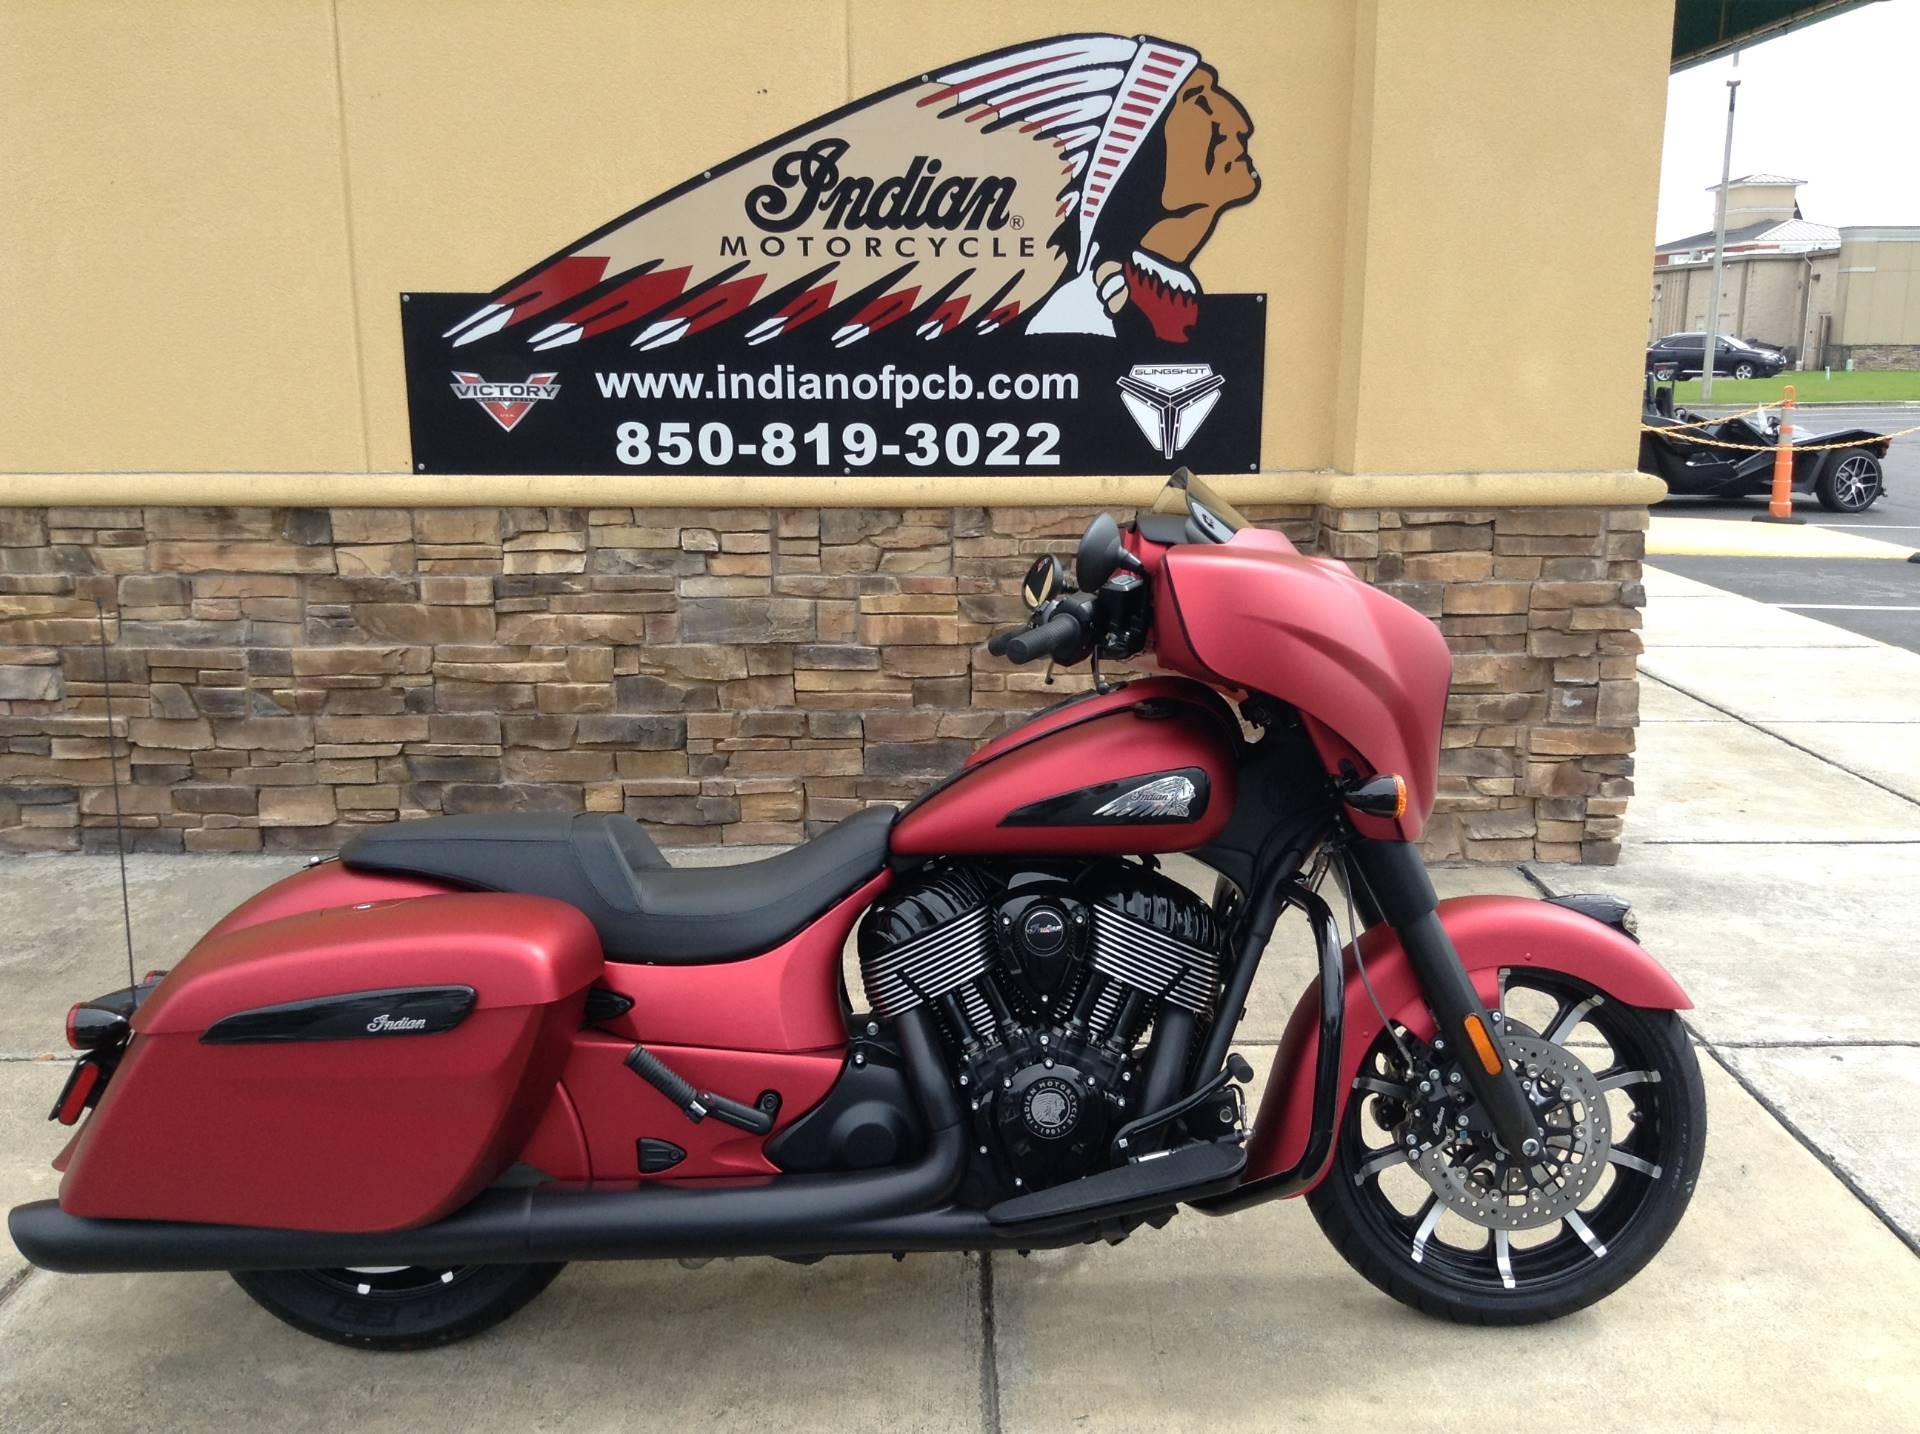 2020 Indian CHIEFTAIN DARKHORSE in Panama City Beach, Florida - Photo 1